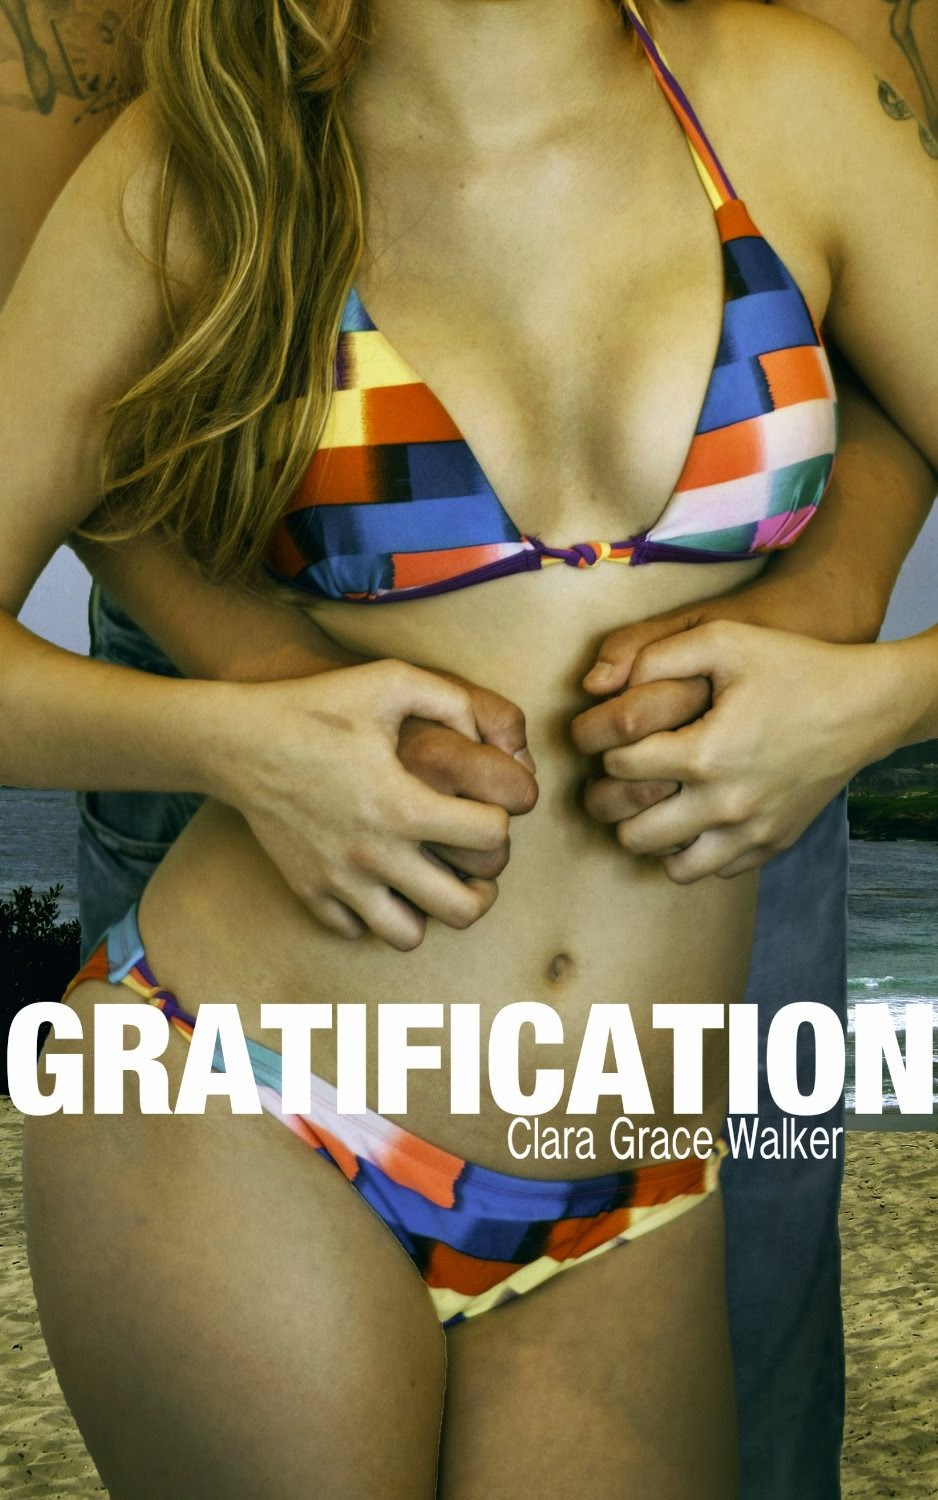 http://www.amazon.com/Gratification-Desire-Never-Dies-1/dp/1500310573/